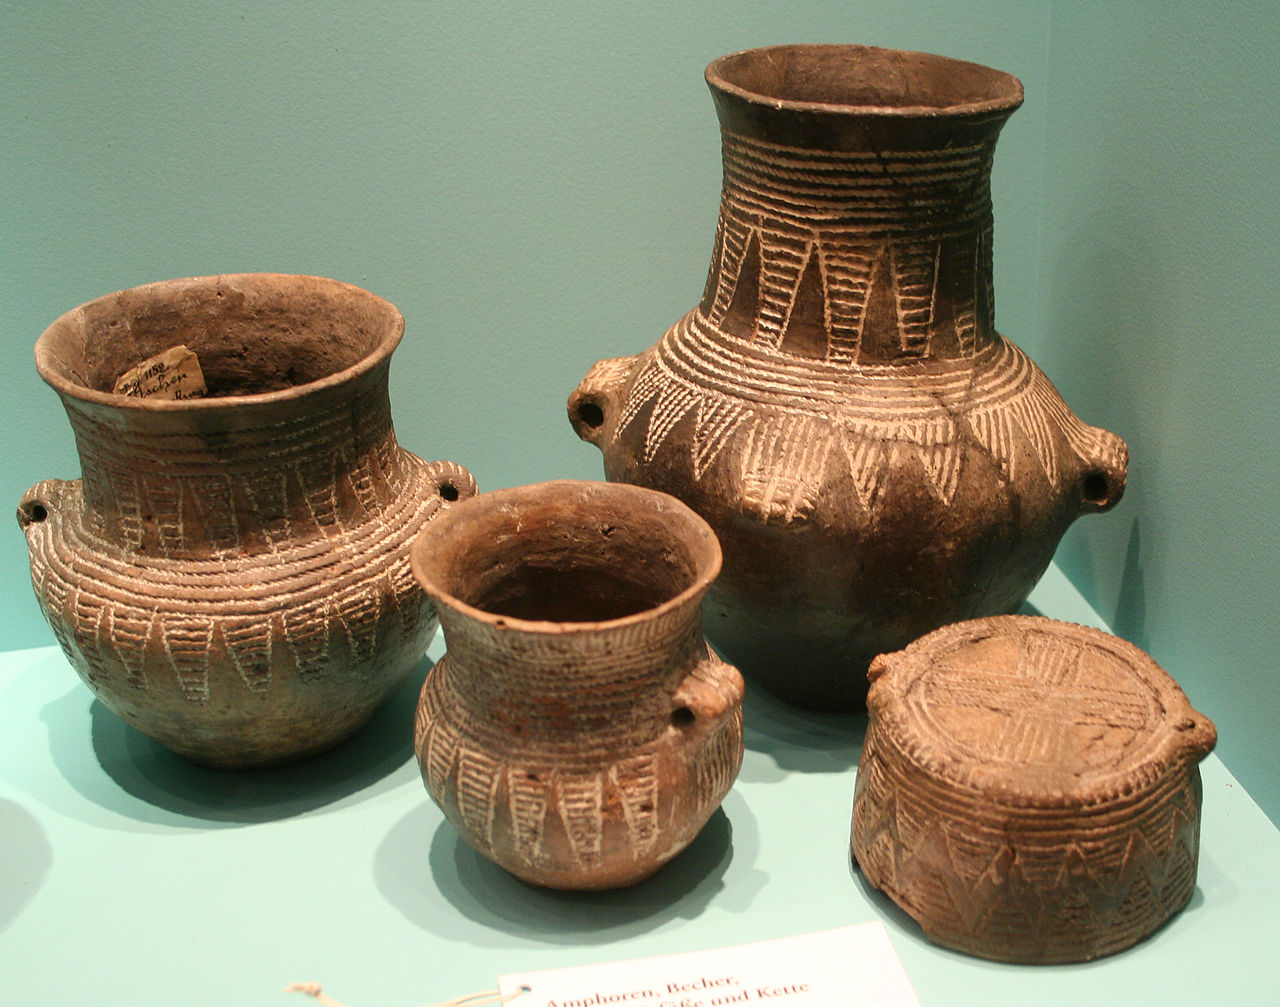 Four ceramic pots, highly decorated with lighter bands created by string during construction.